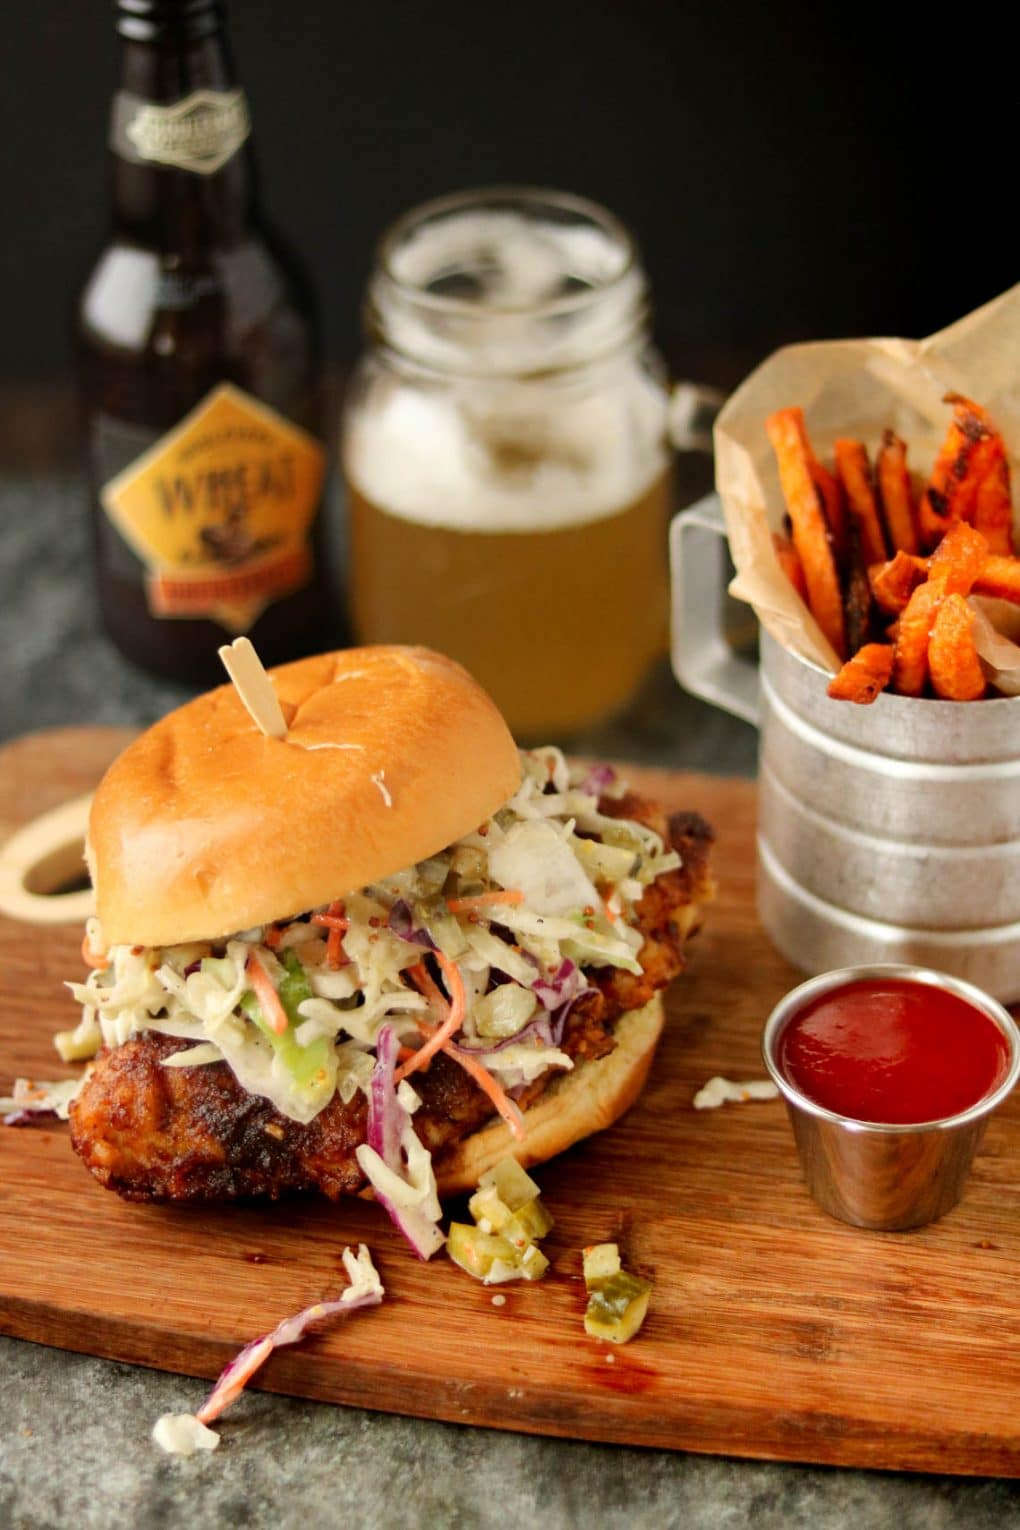 Nashville Hot Chicken Sandwich on a wooden cutting board. There's a serving of sweet potato fries sitting next to it, a small sauce cup of ketchup and a beer in the background